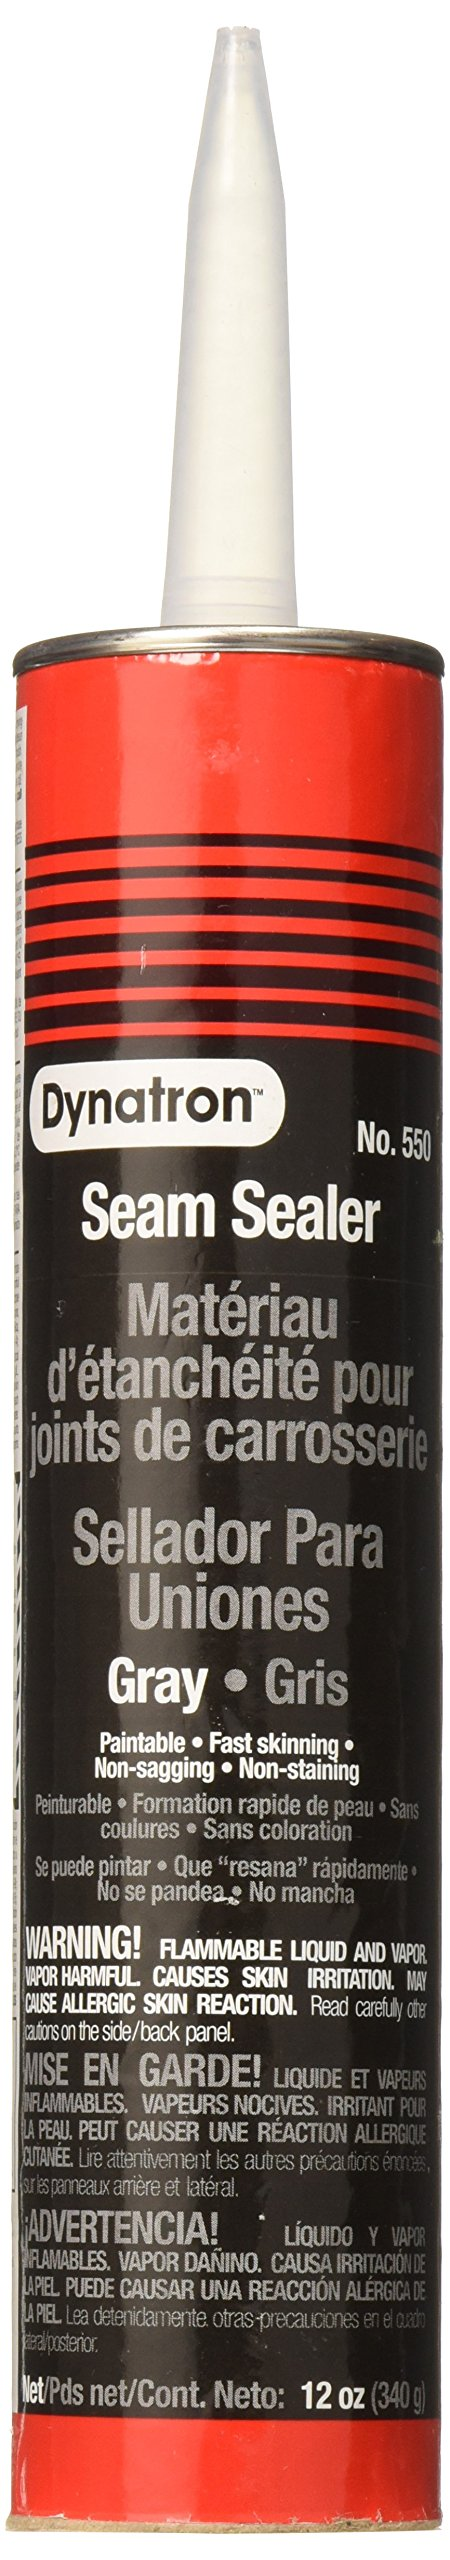 Dynatron 550 Auto Seam Sealer Grey Caulk - 12 oz. product image